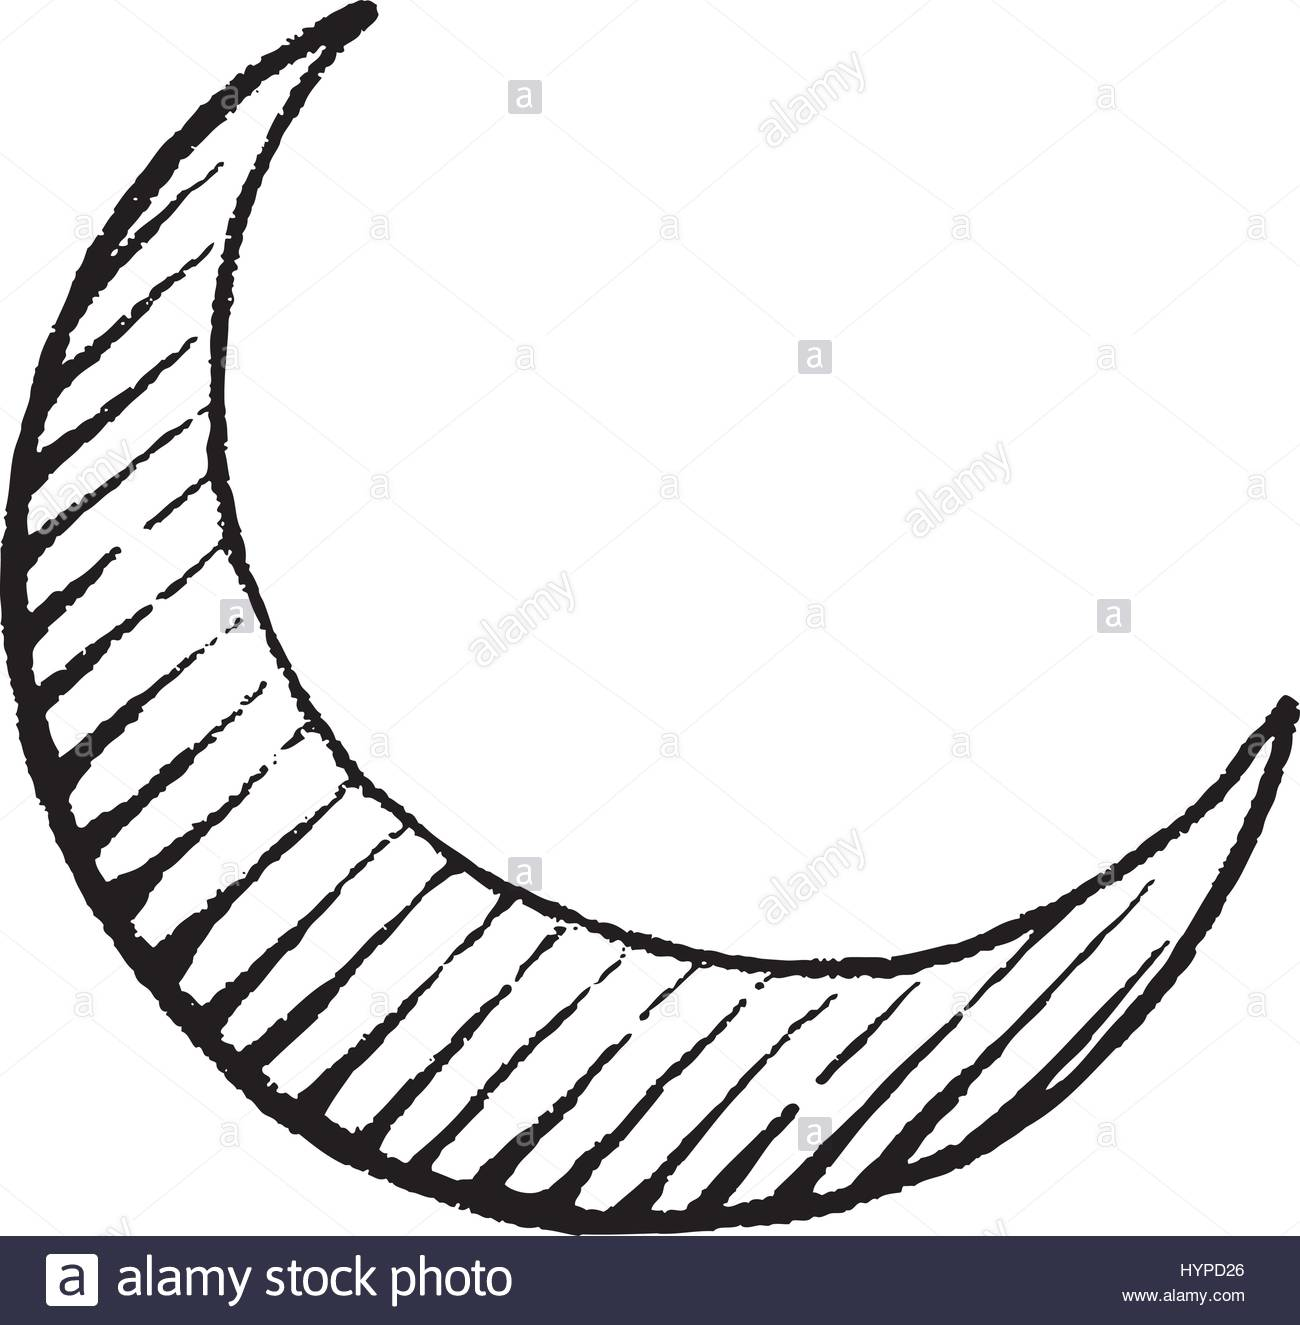 1300x1325 Vector Illustration Of A Scratchboard Style Ink Drawing Of Moon